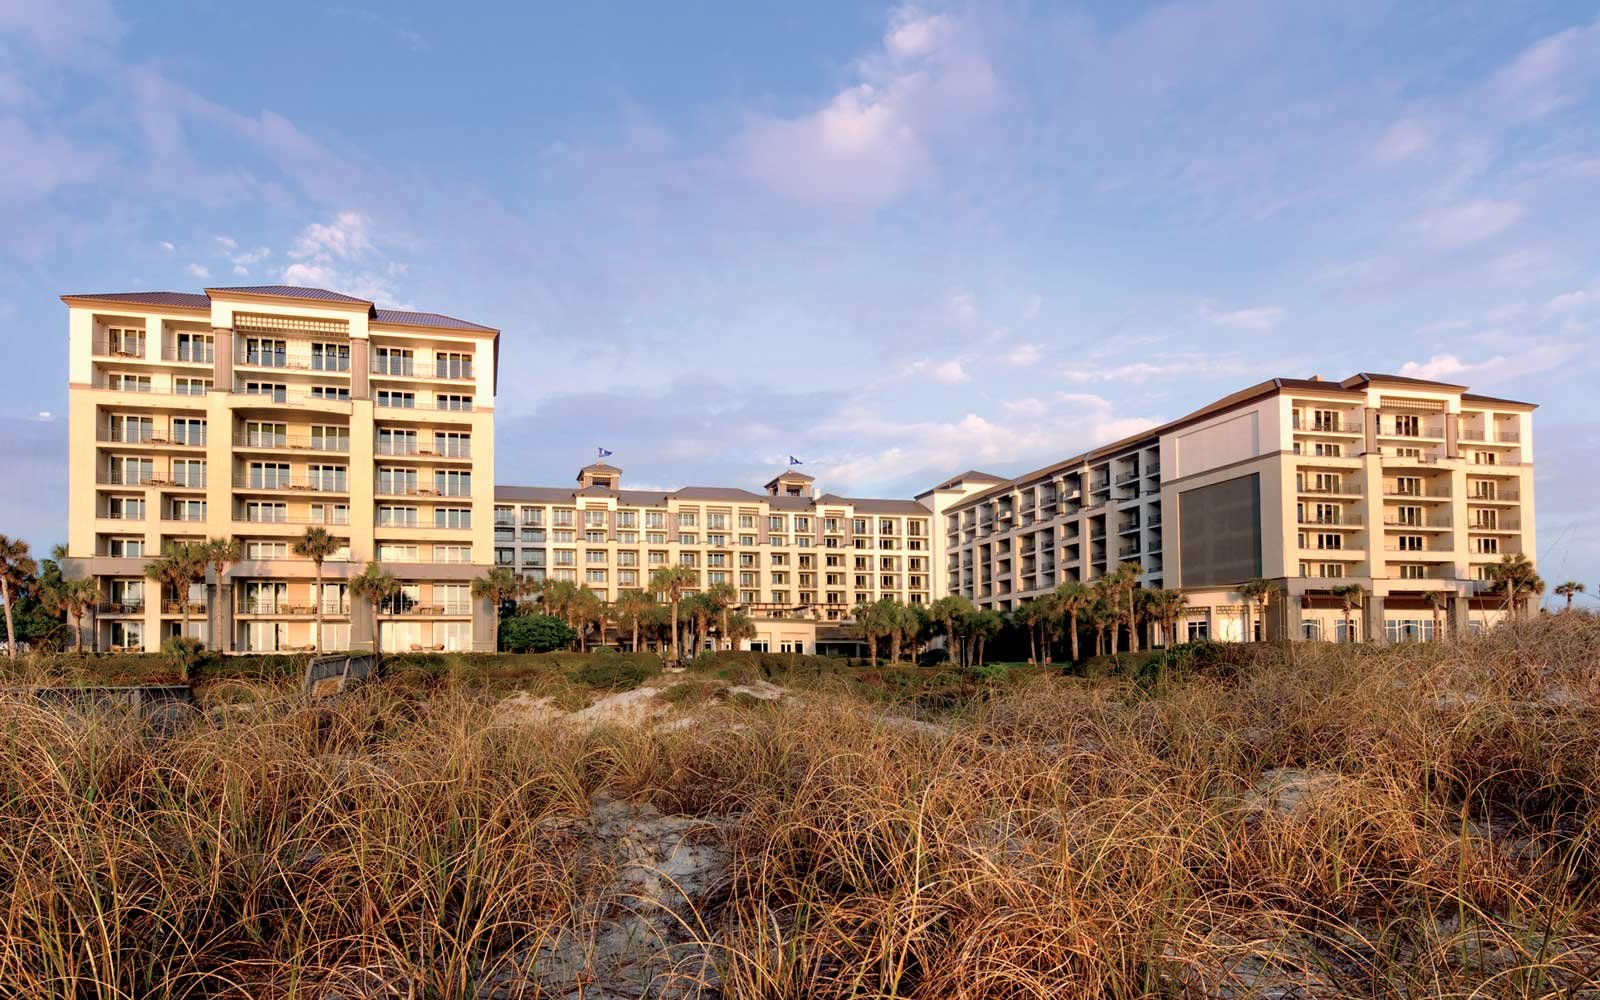 Exterior of the Ritz-Carlton, Amelia Island